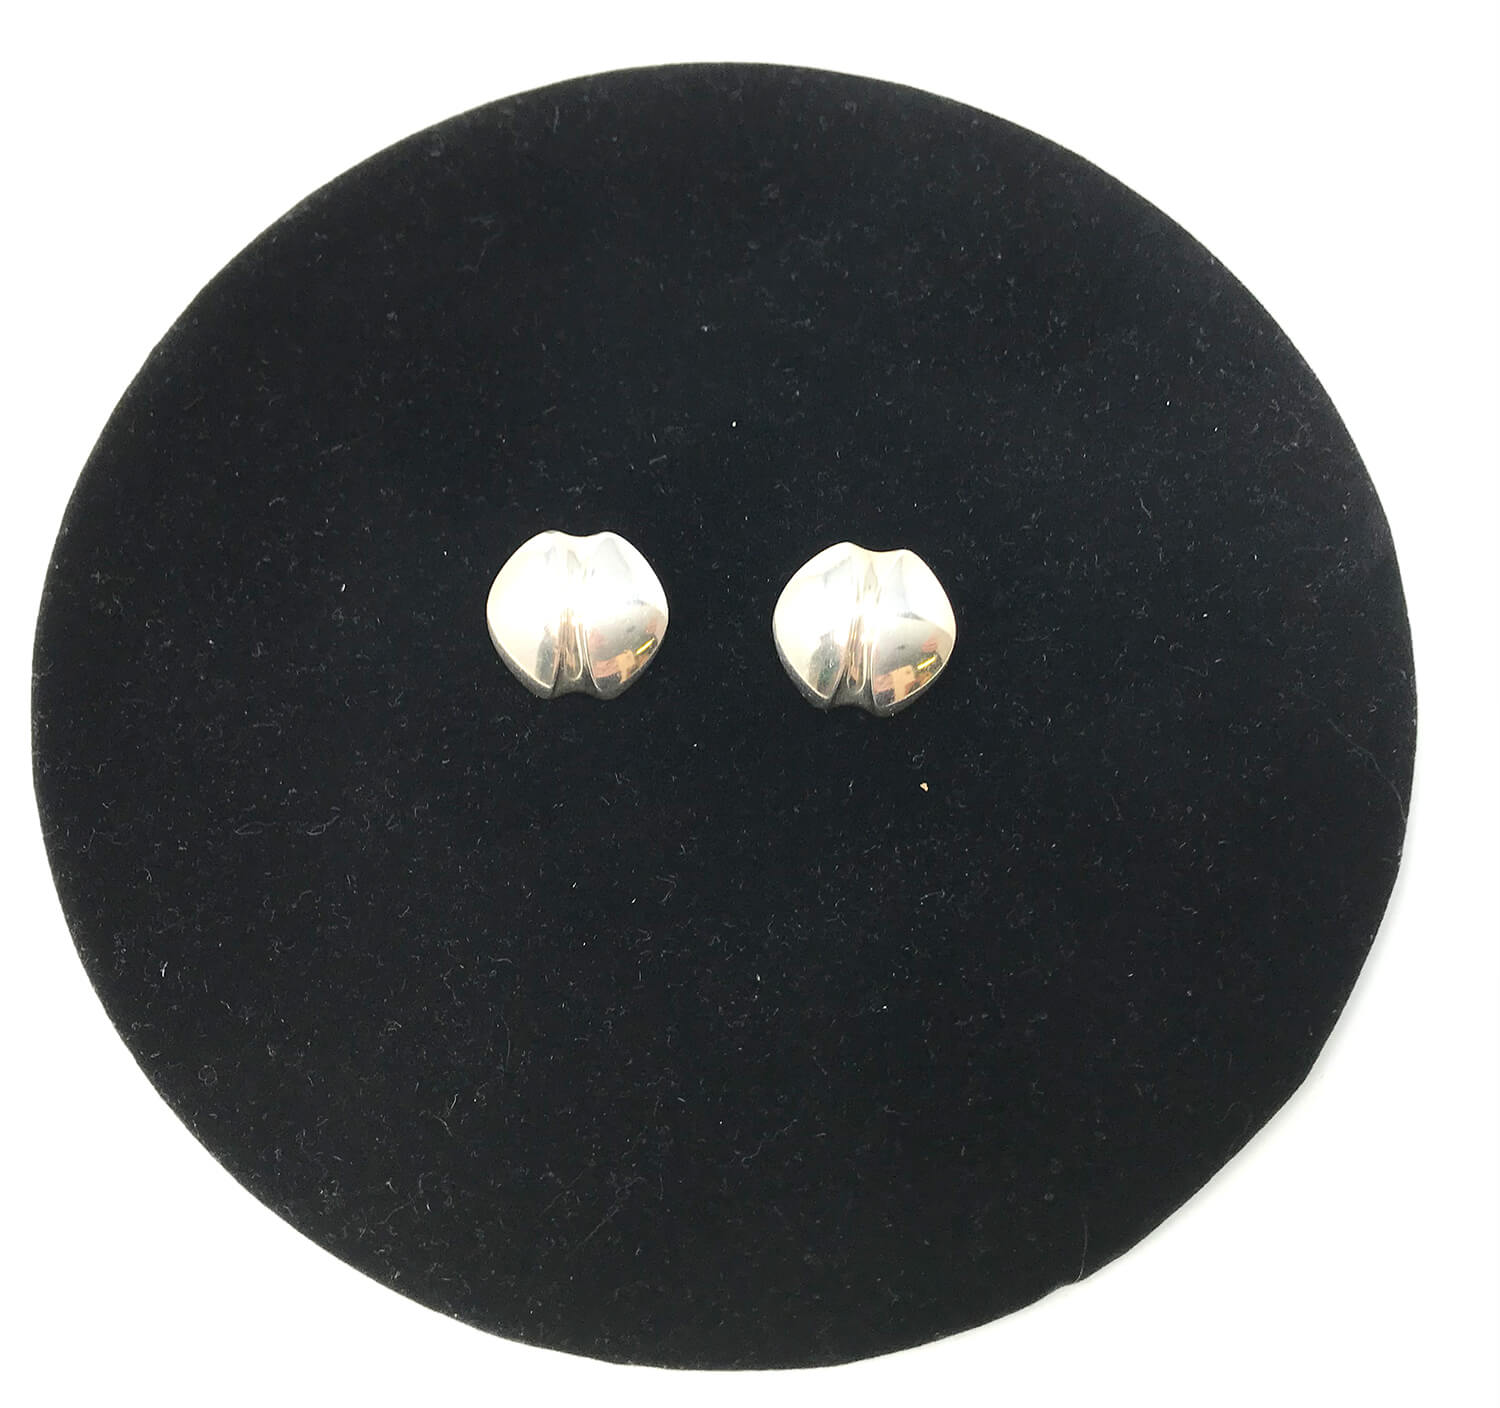 Georg Jensen Earrings Designed by Henning Koppel